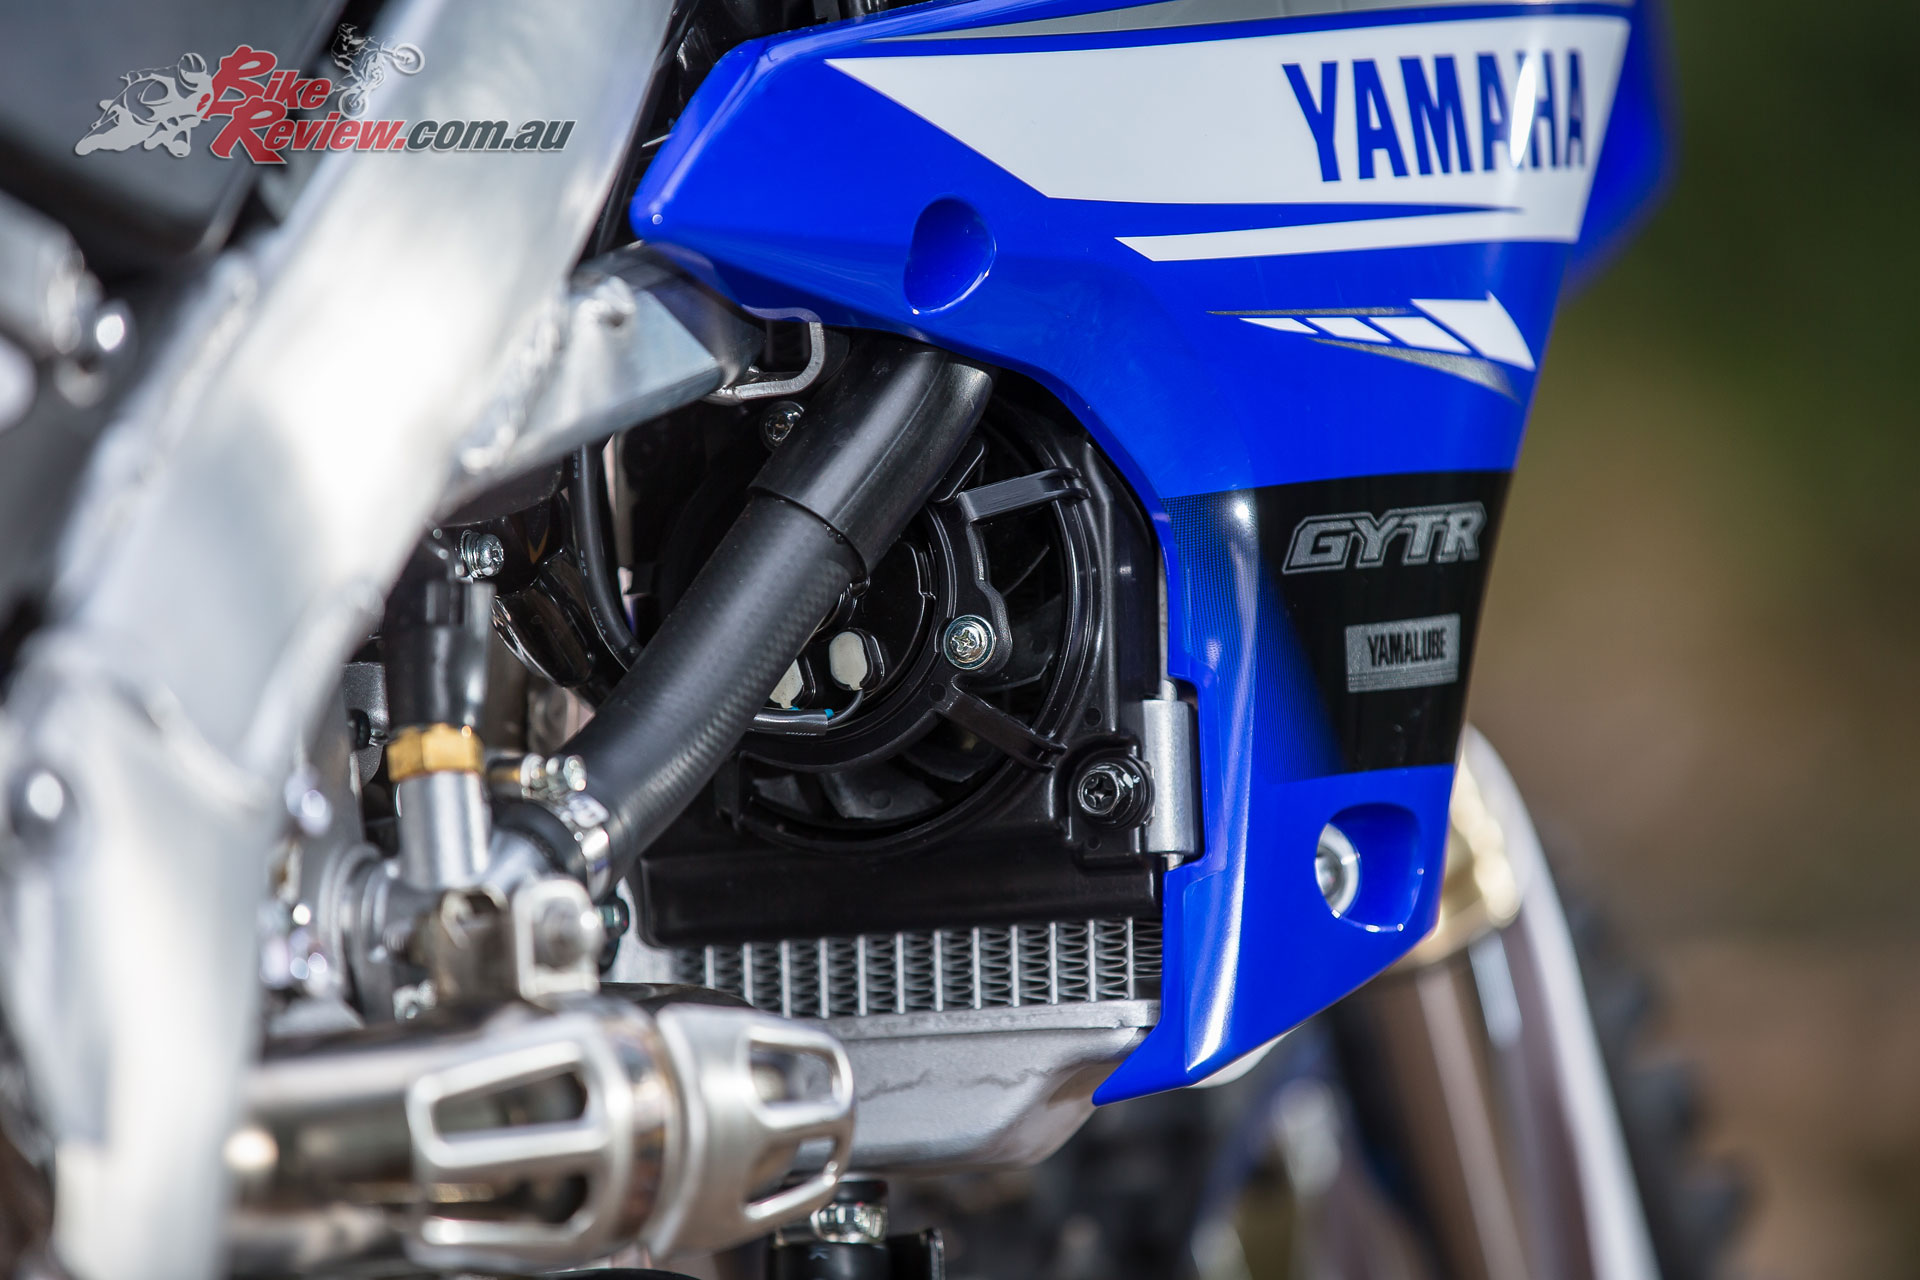 2019 Yamaha WR450F - Larger radiator and standard fan